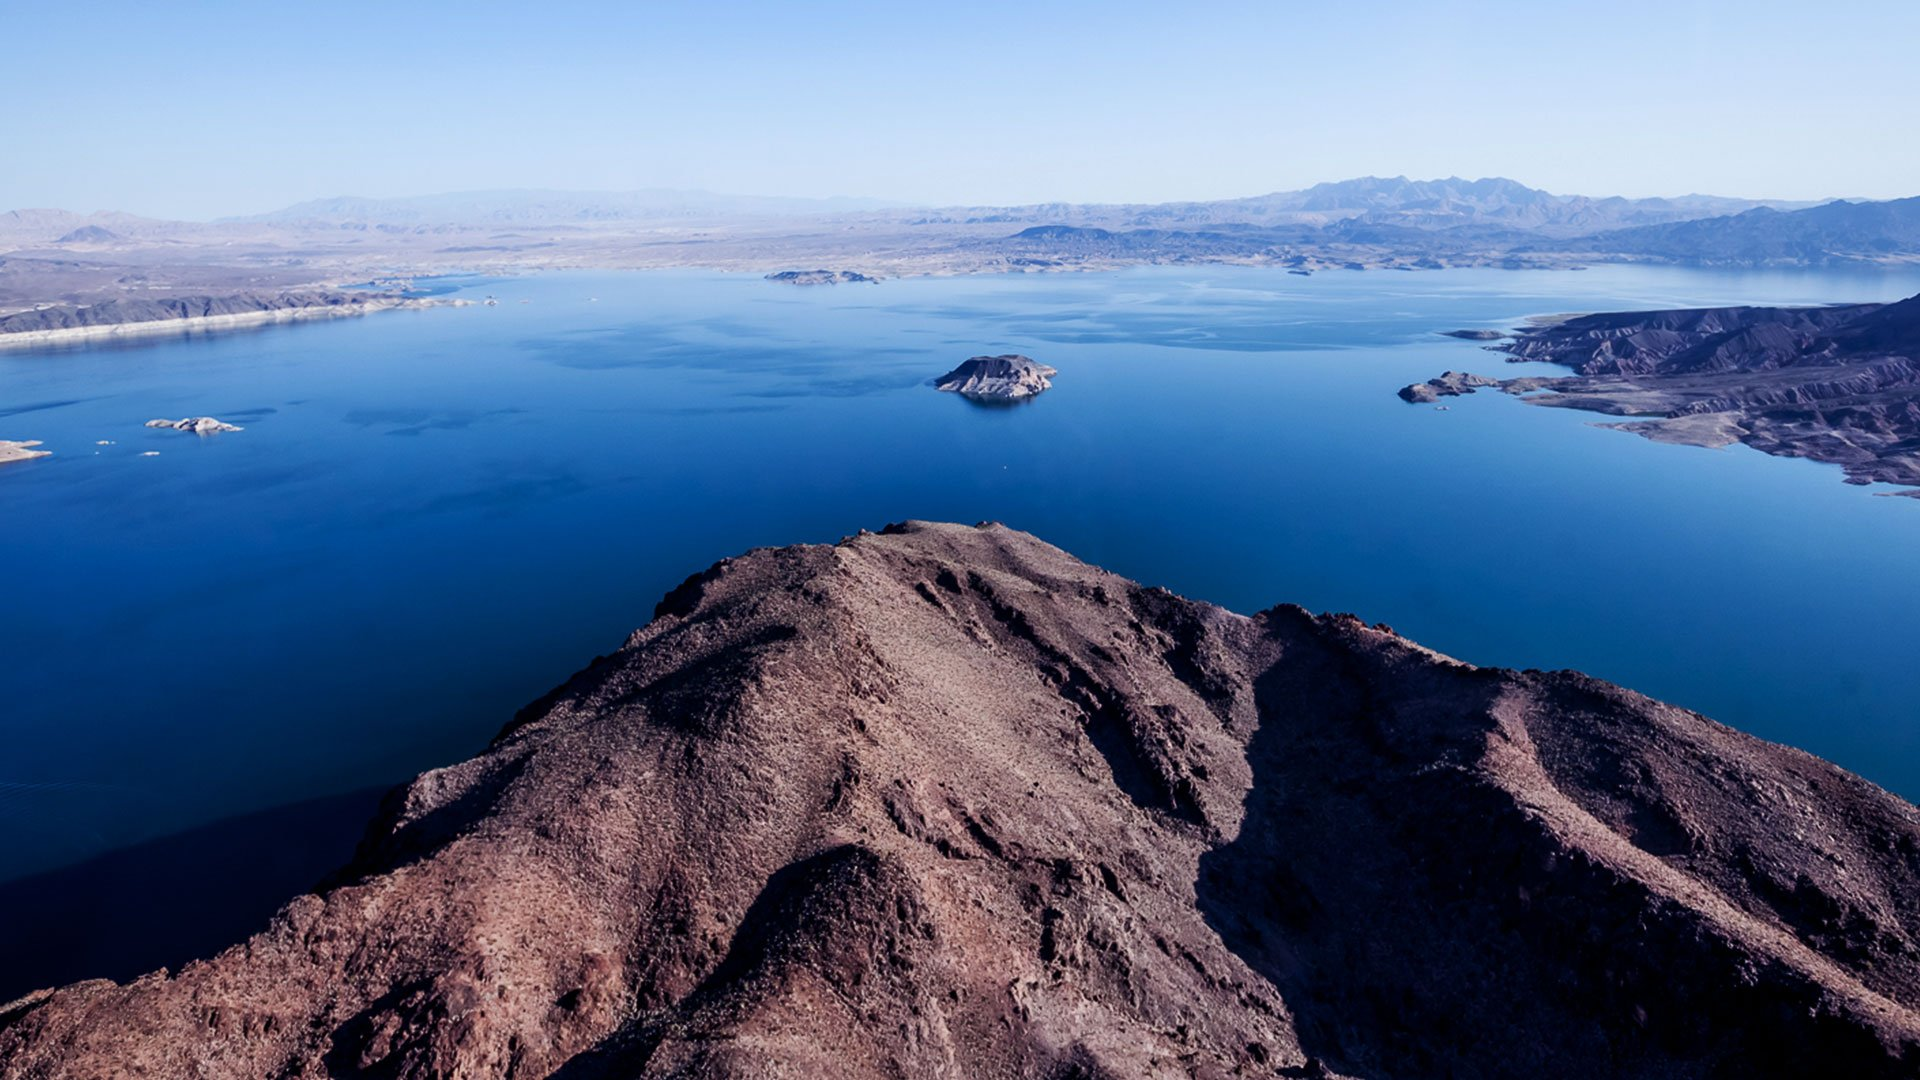 Aerial view of the bright blue waters of Lake Mead.